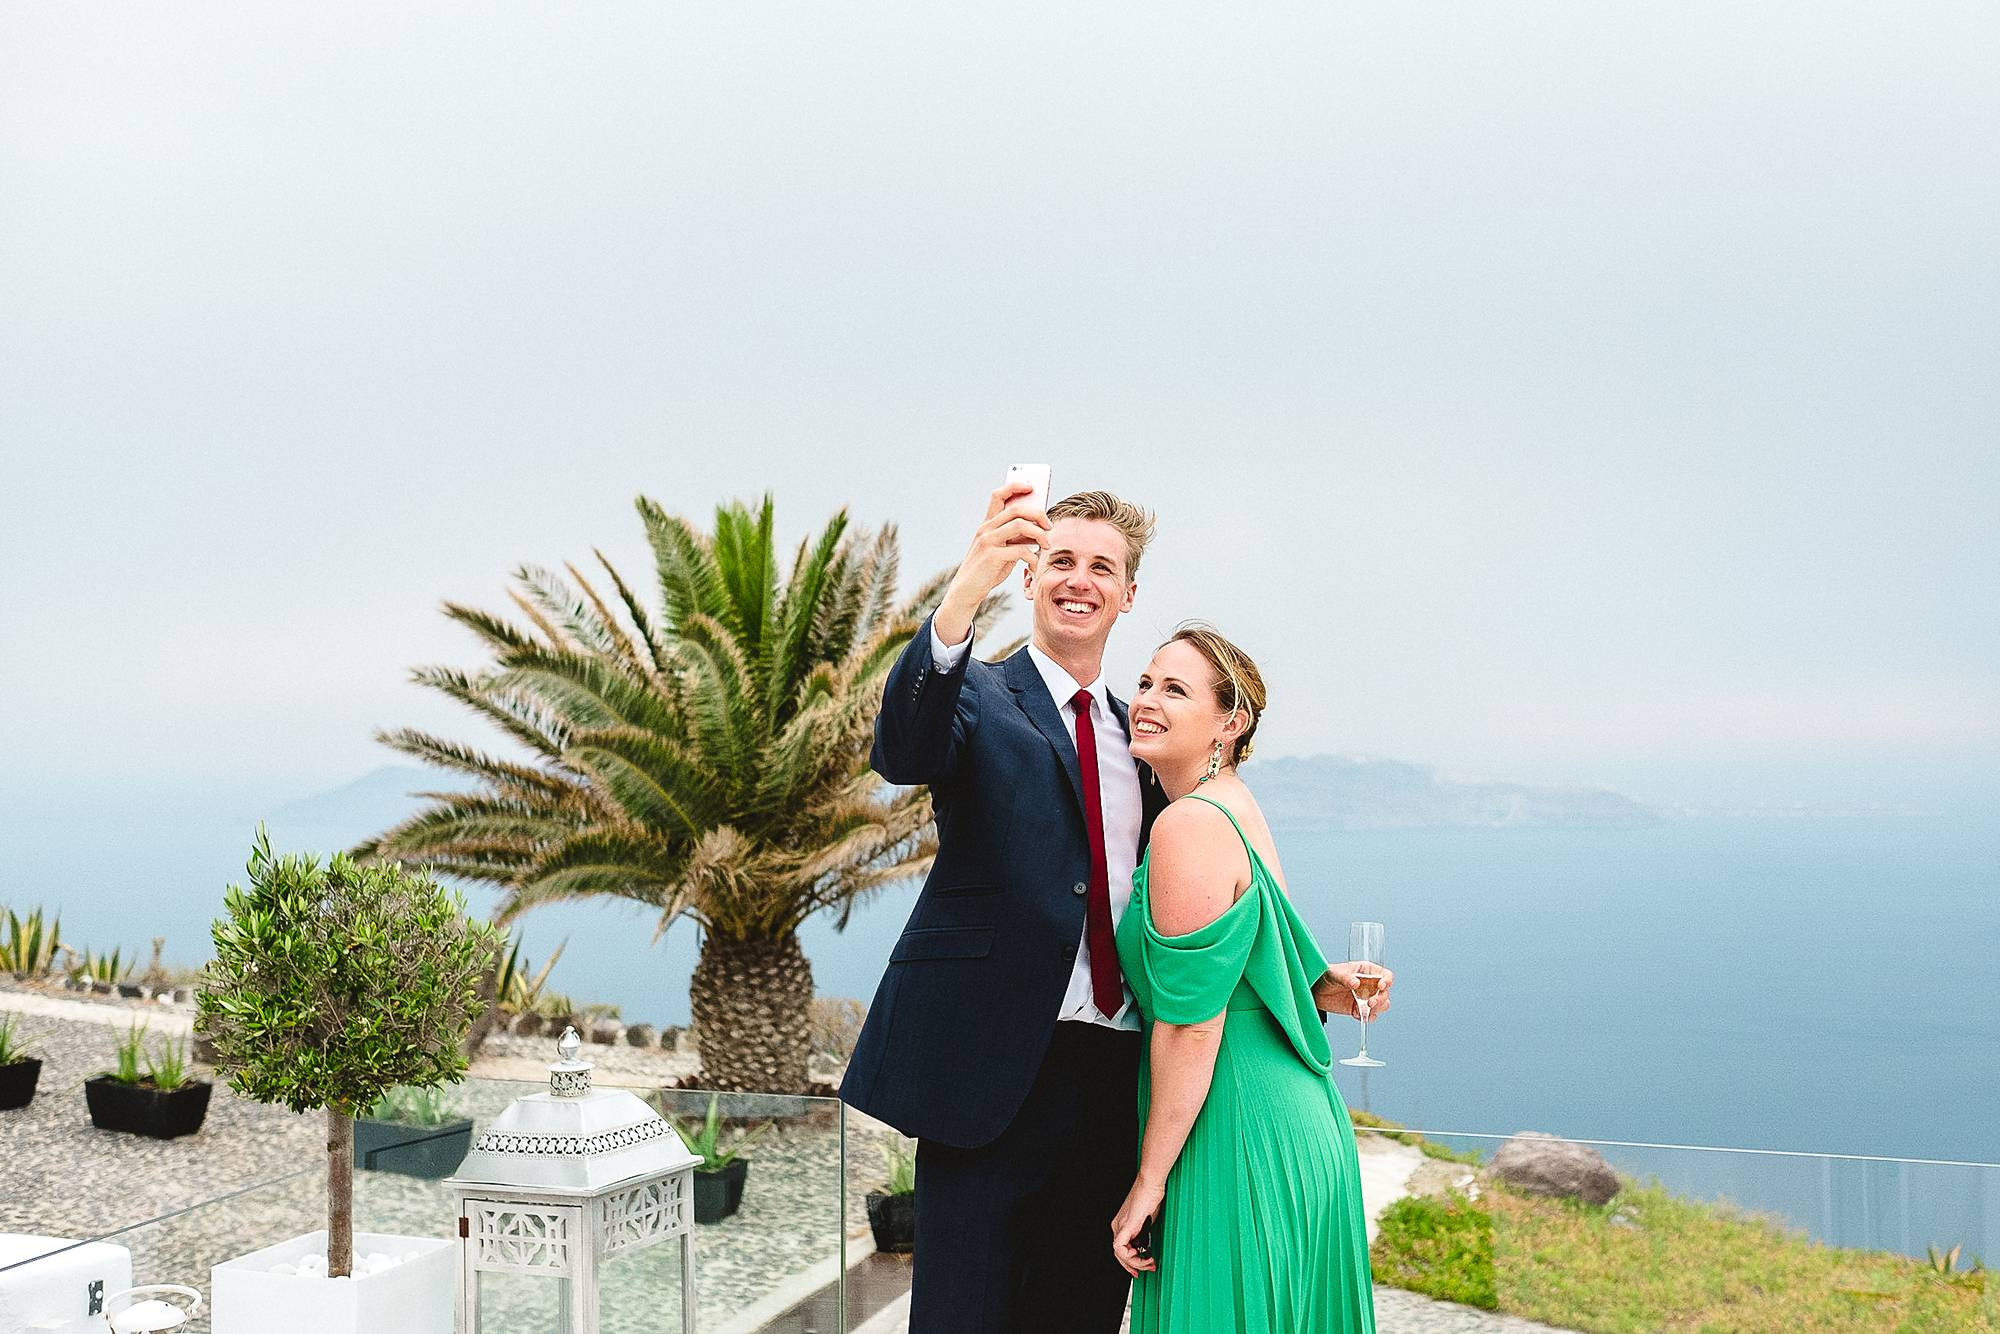 Santorini-Wedding-Photographer-87.jpg